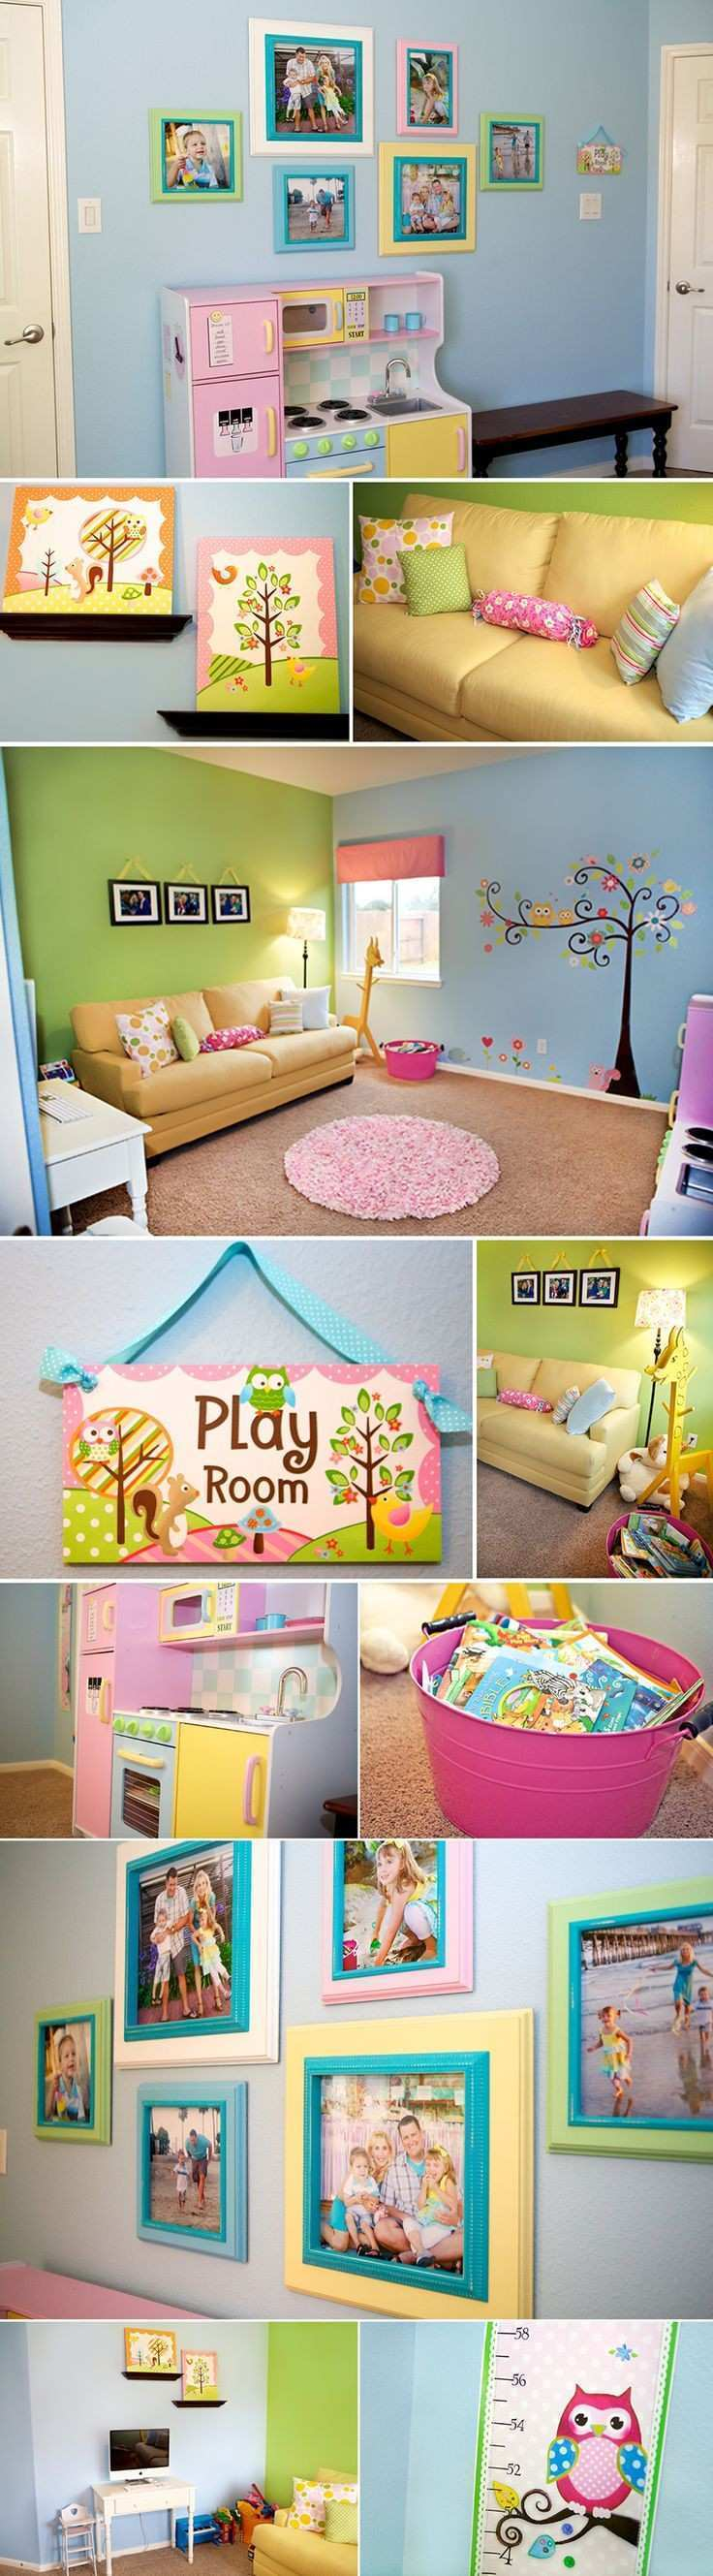 Home Designs Frozen Bedroom Painting Best Awesome Wall Decals